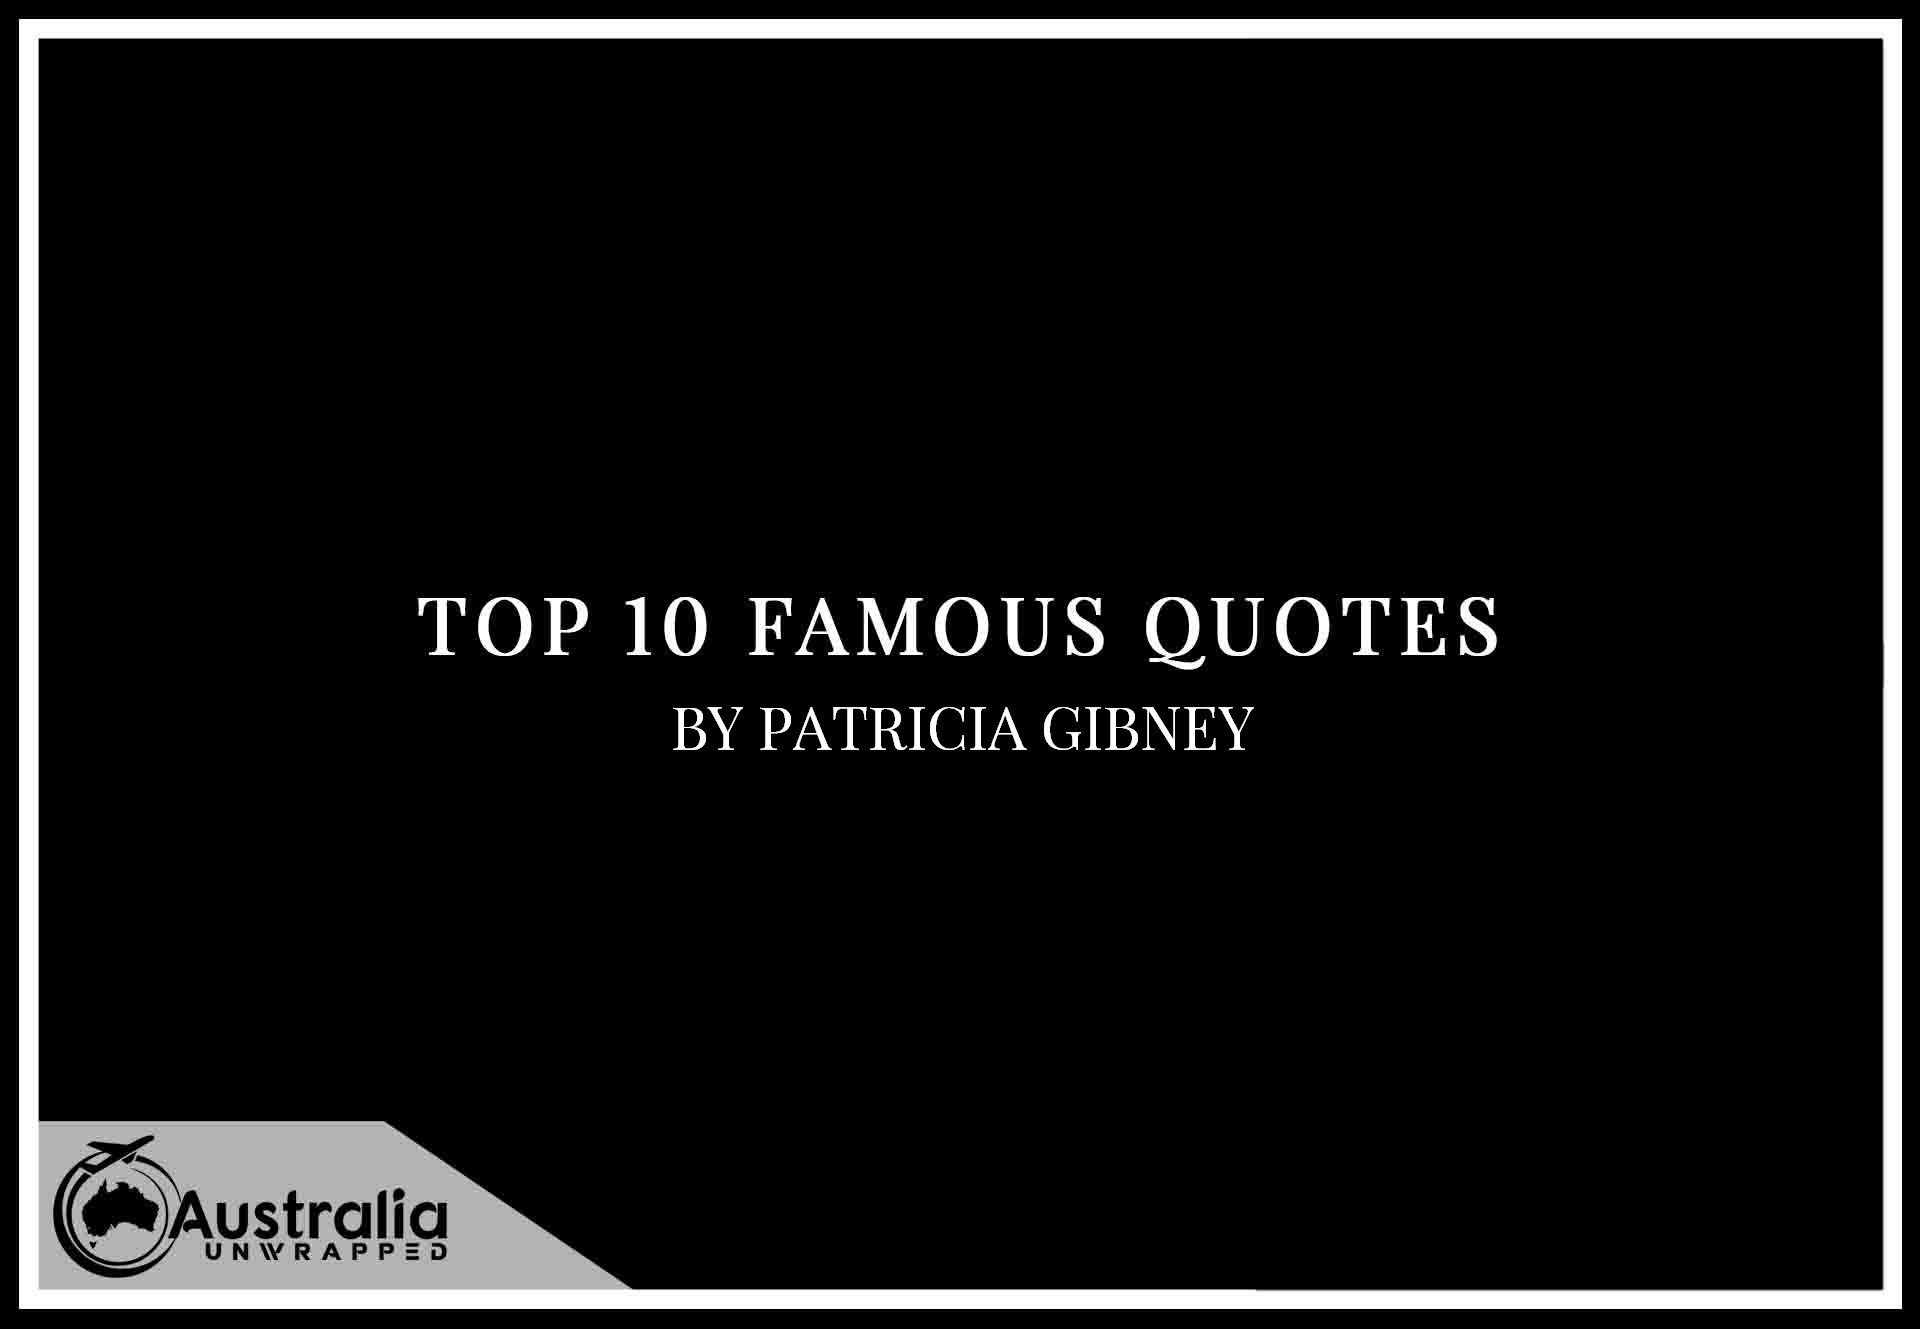 Top 10 Famous Quotes by Author Patricia Gibney